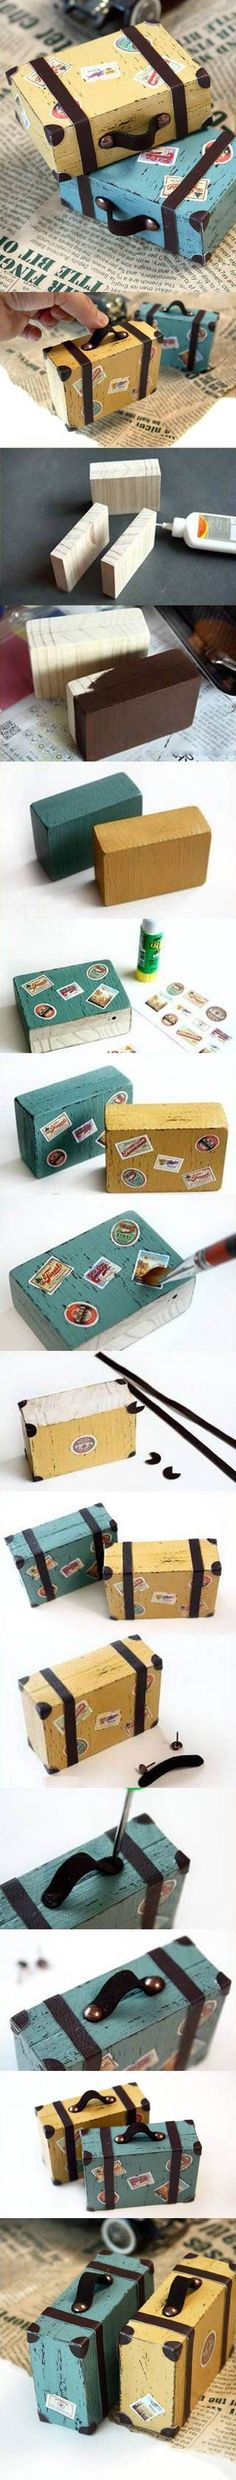 DIY Lovely Mini Suitcase Paperweights | iCreativeIdeas.com Like Us on Facebook ==> https://www.facebook.com/icreativeideas